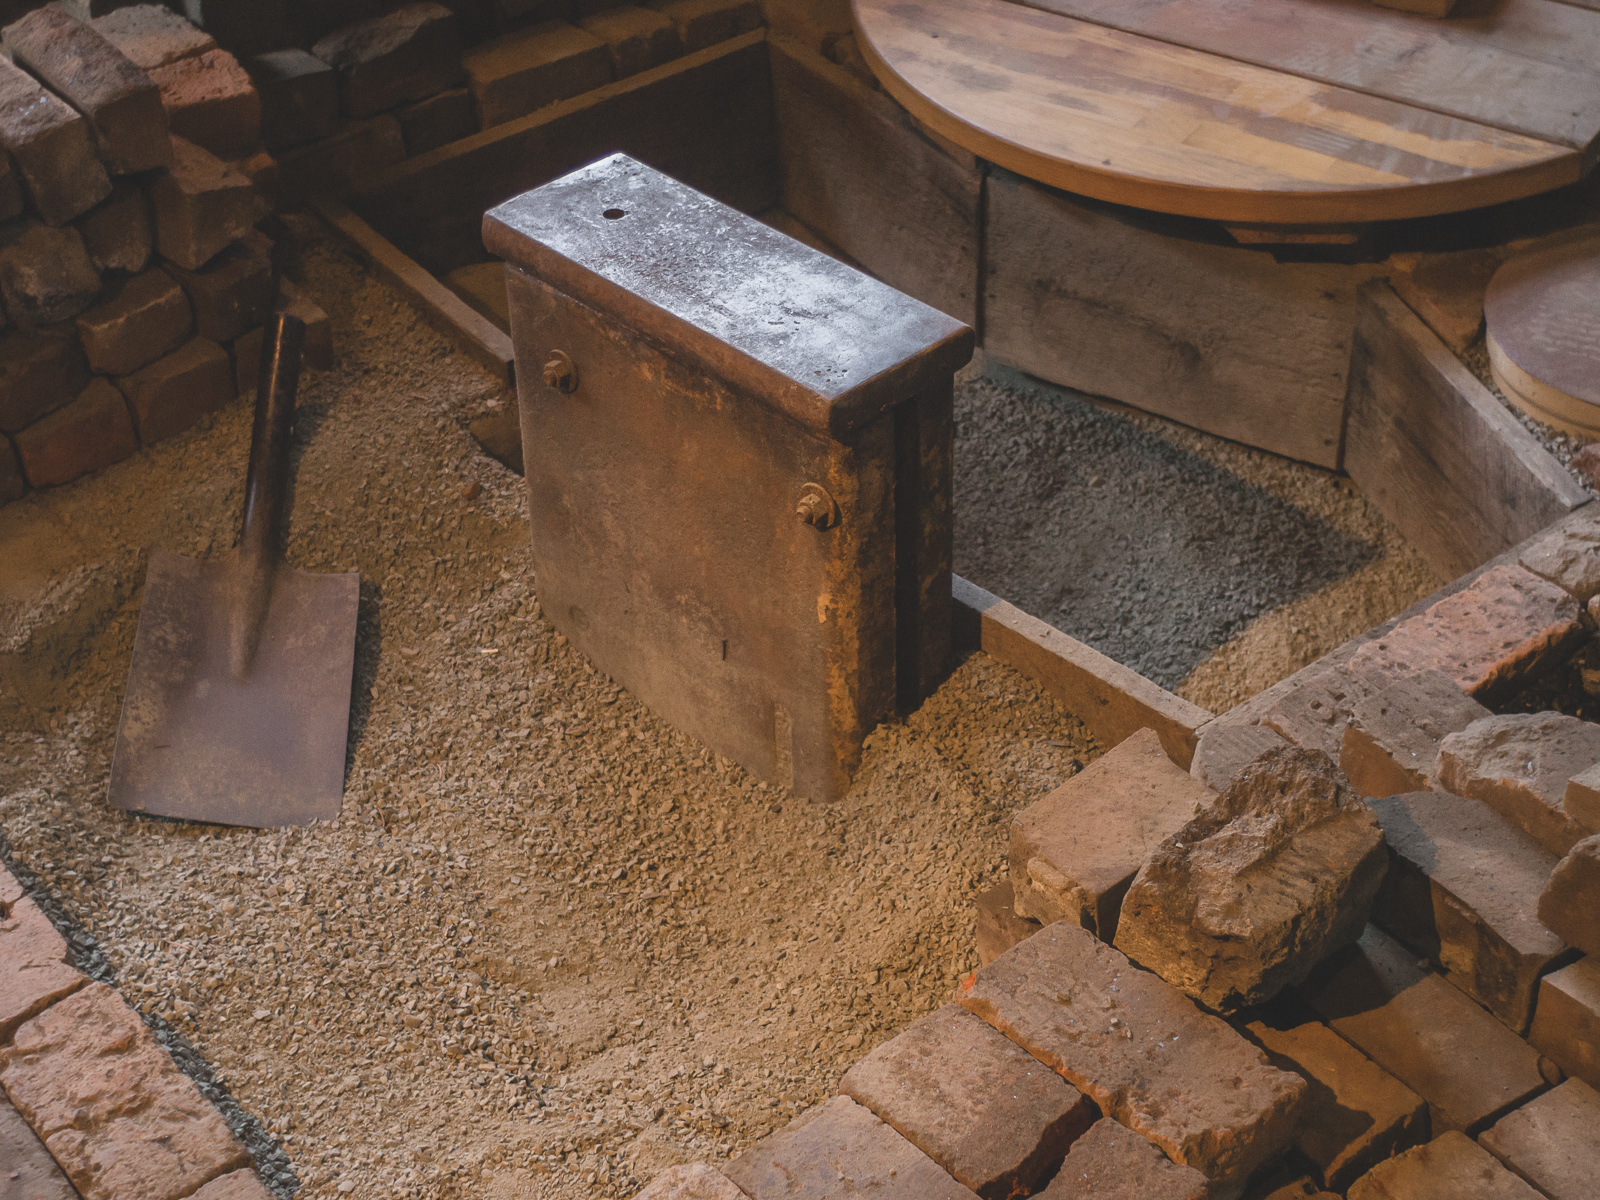 Island Blacksmith: Traditional Japanese style bladesmith anvil.